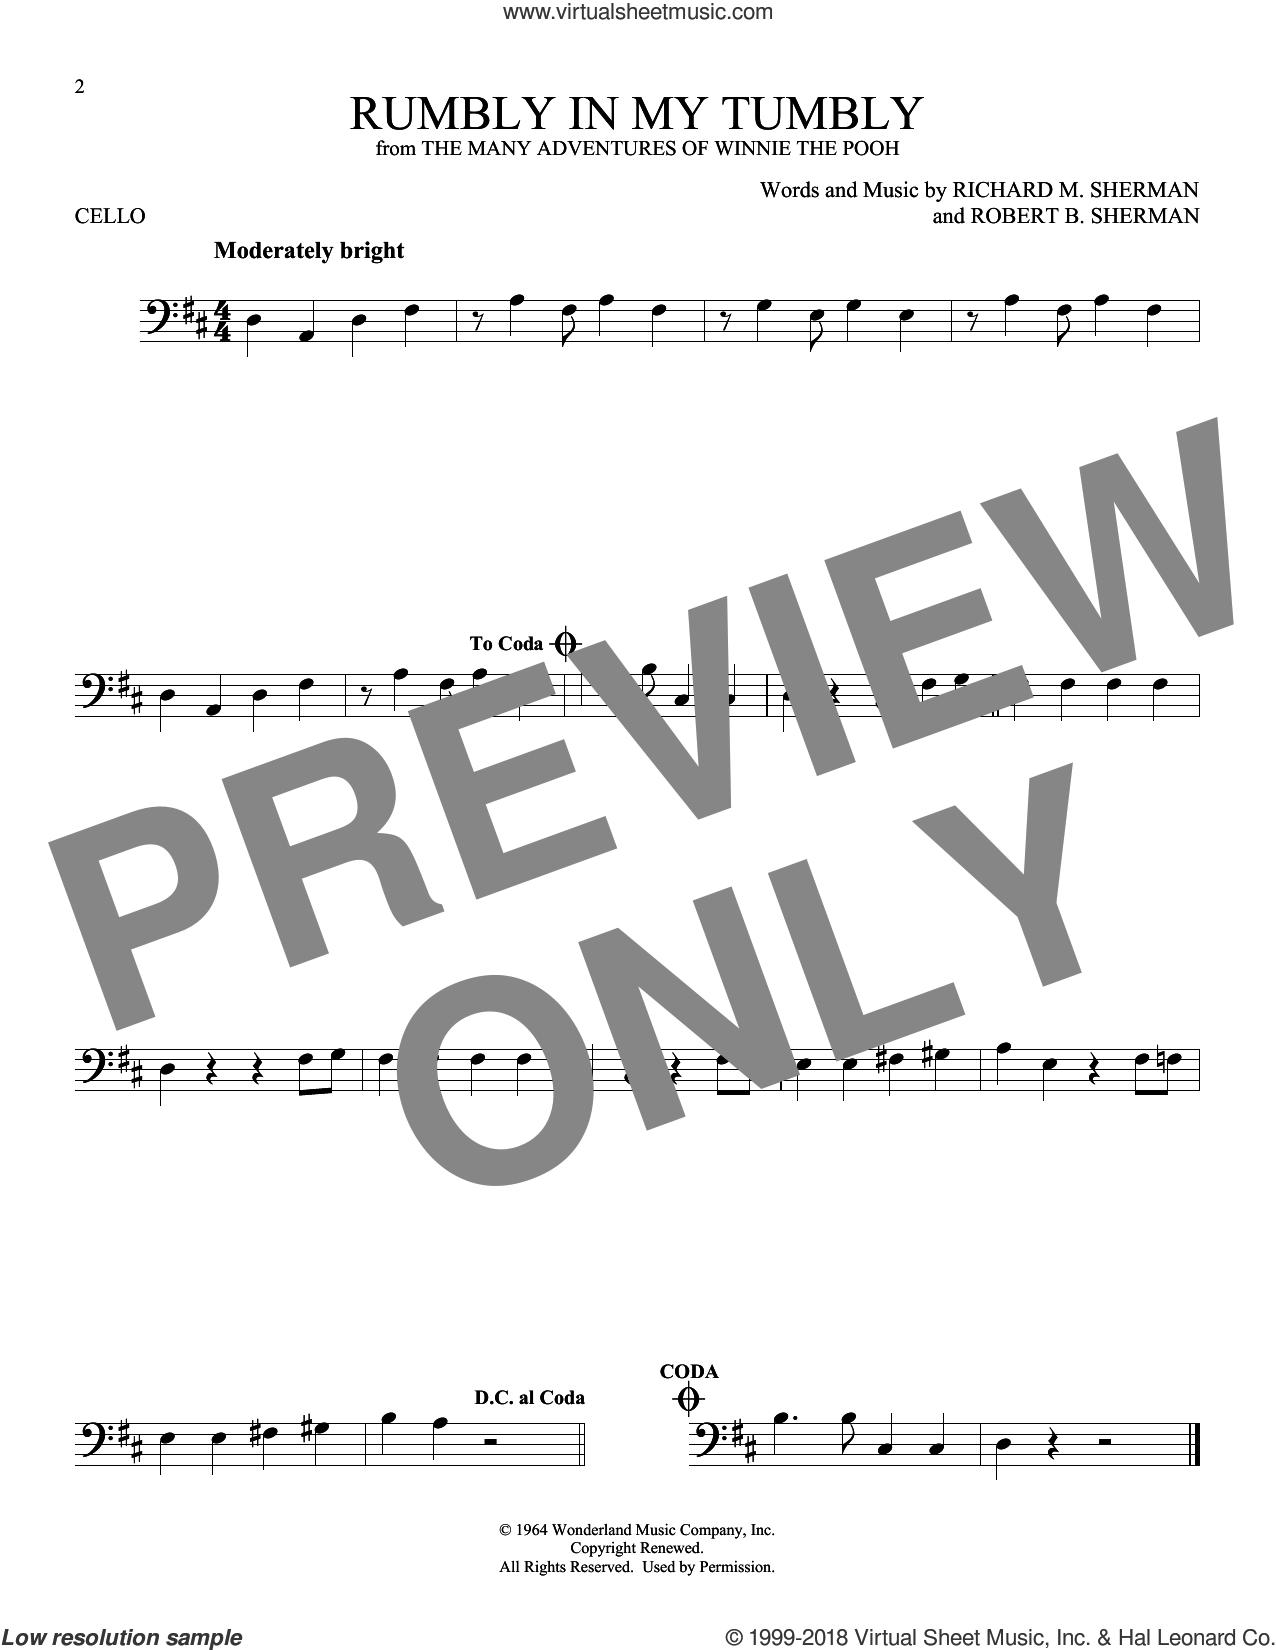 Rumbly In My Tumbly sheet music for cello solo by Richard M. Sherman and Robert B. Sherman, intermediate skill level